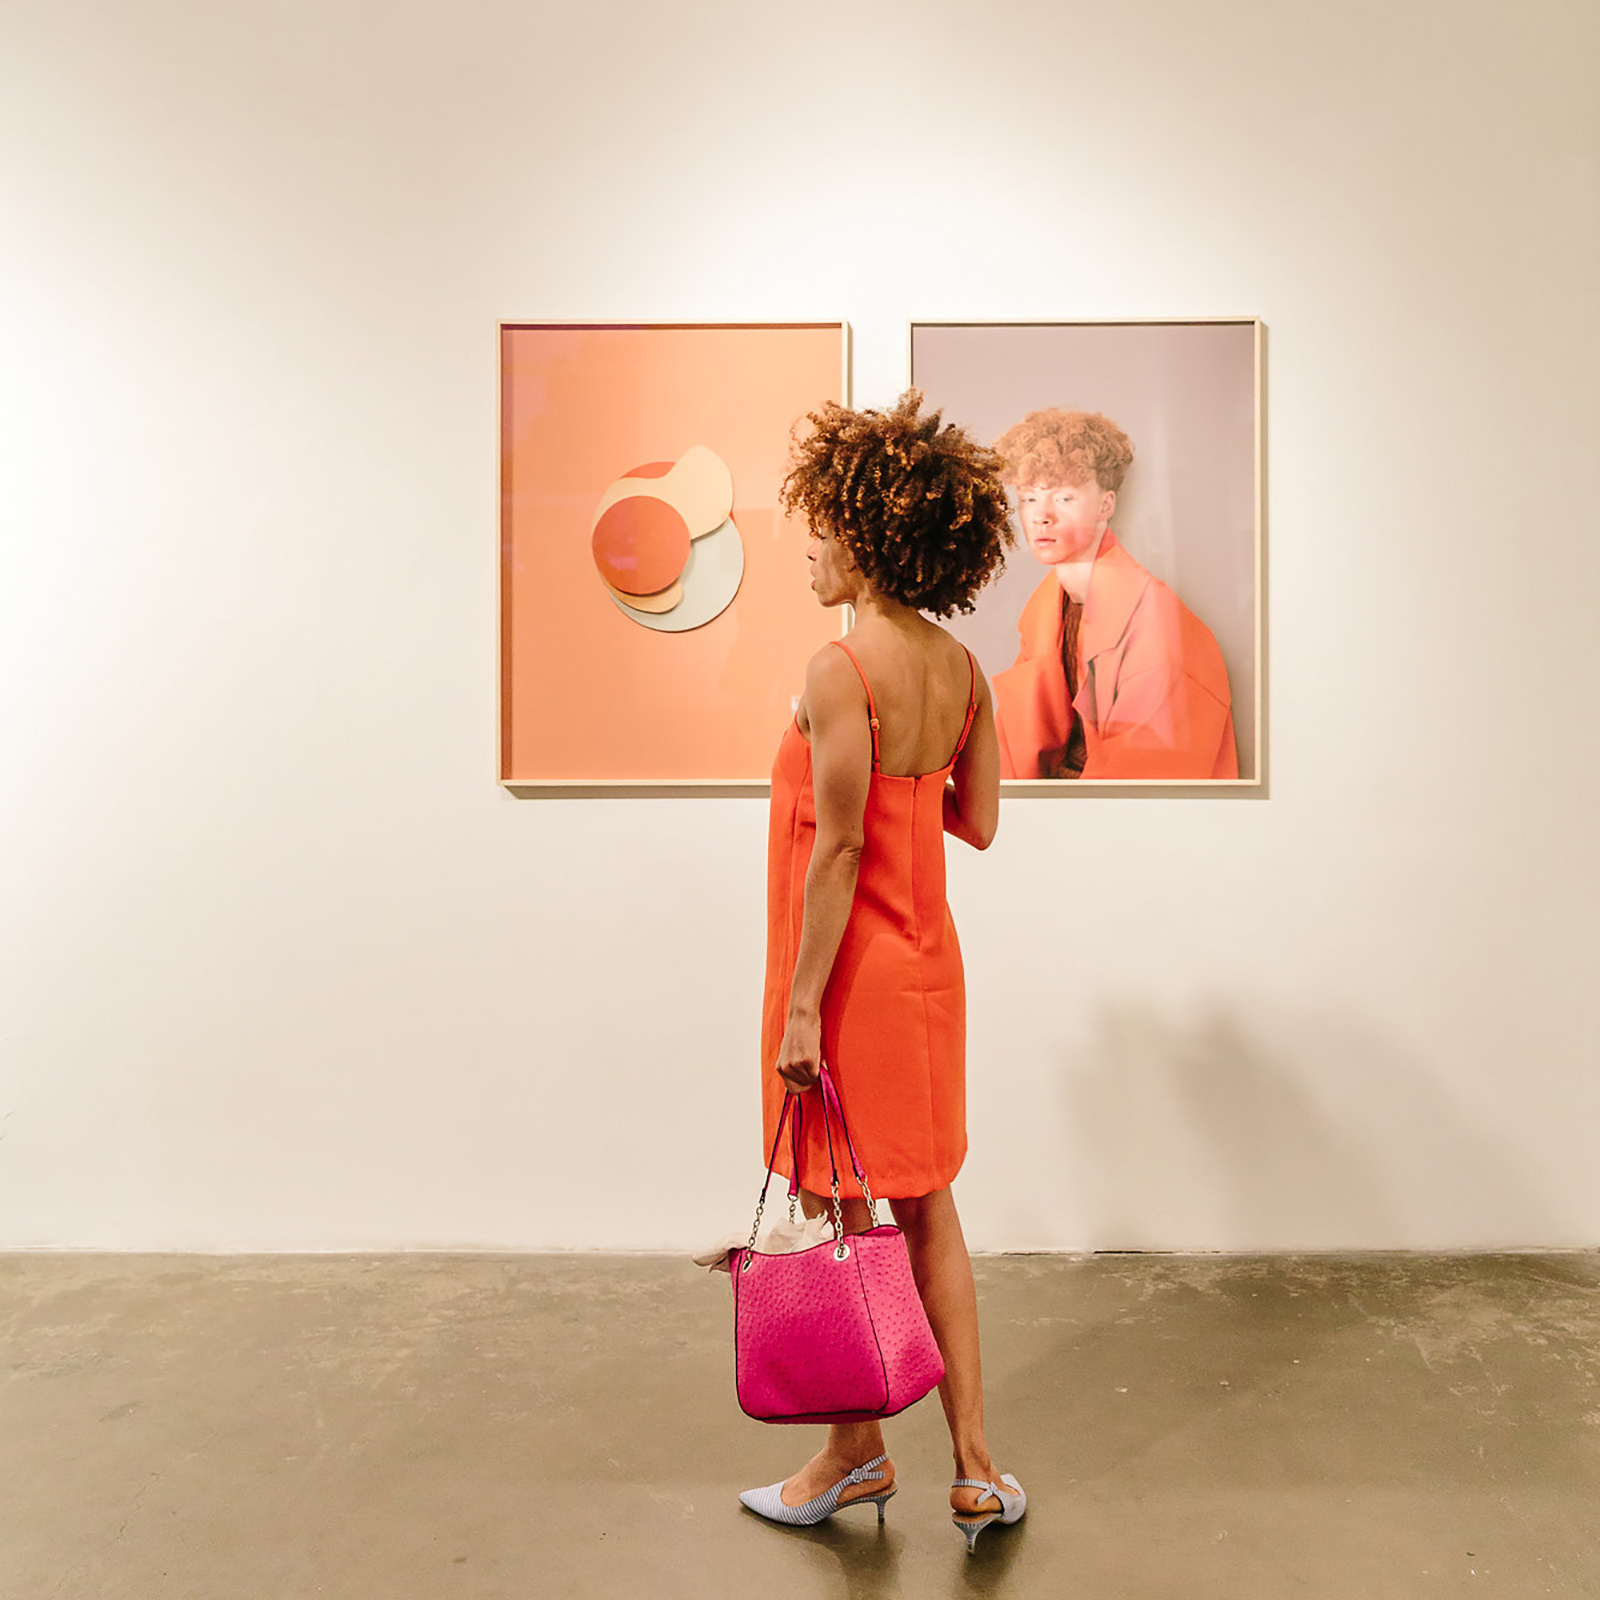 woman in orange dress holding pink bag standing in front of two paintings